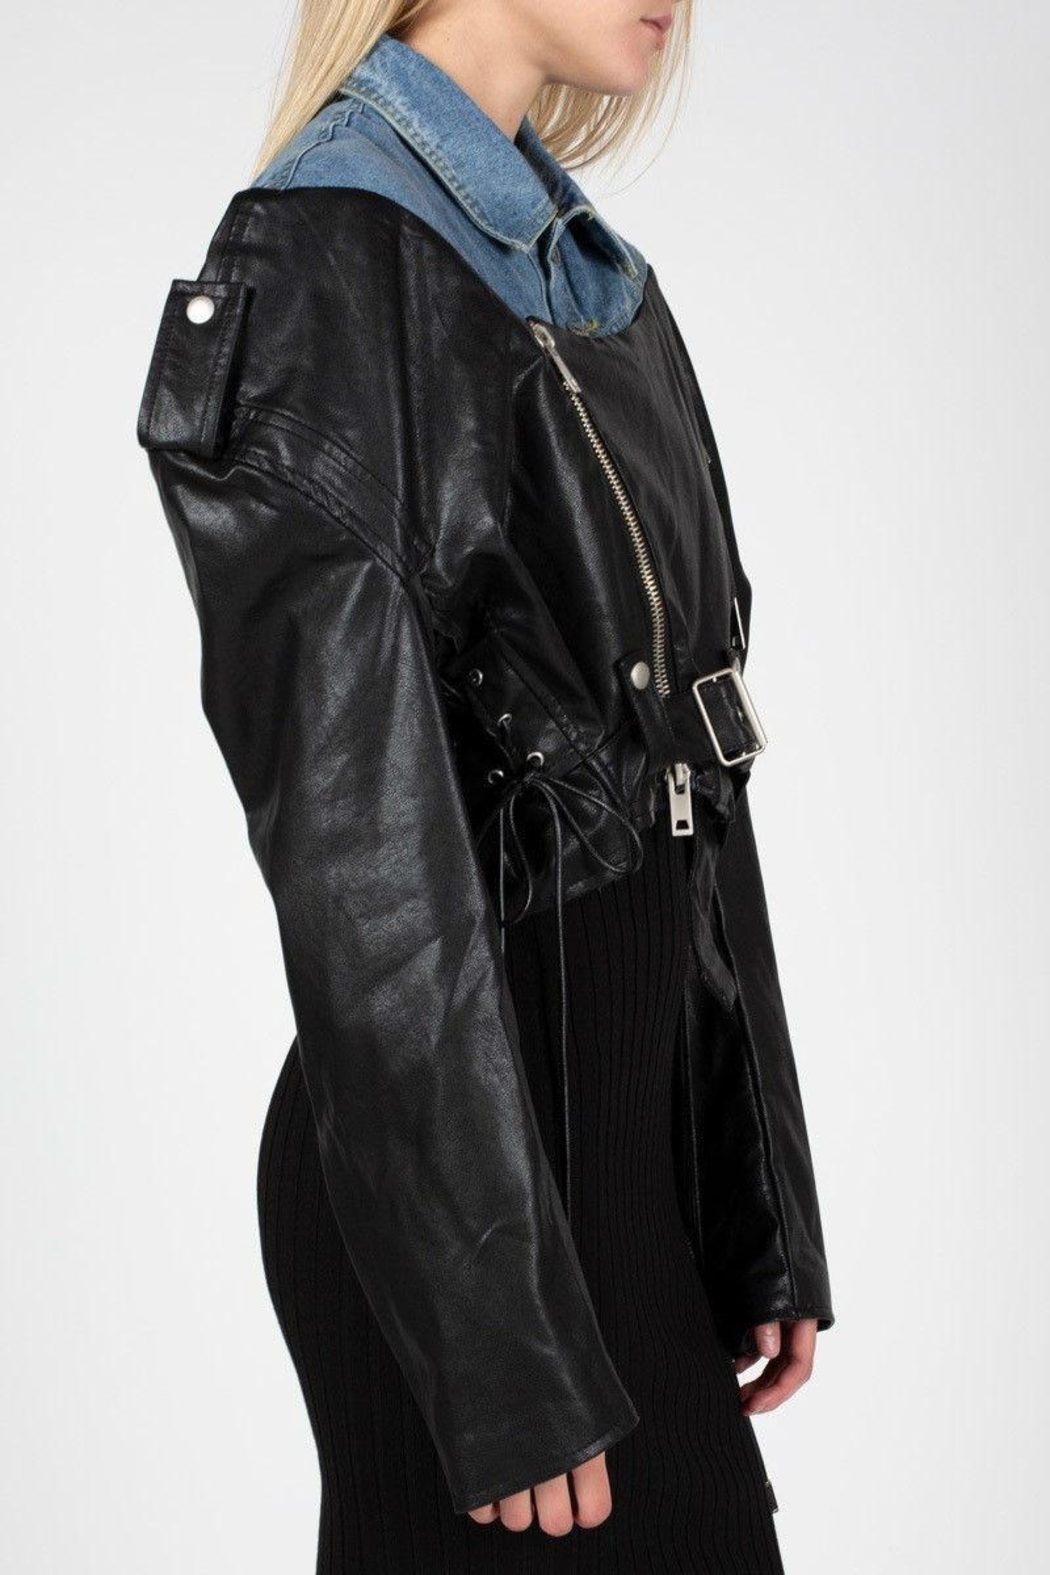 3447b0d5ed BEULAH STYLE Denim   Leather Jacket from Brooklyn by Glam Expressway ...